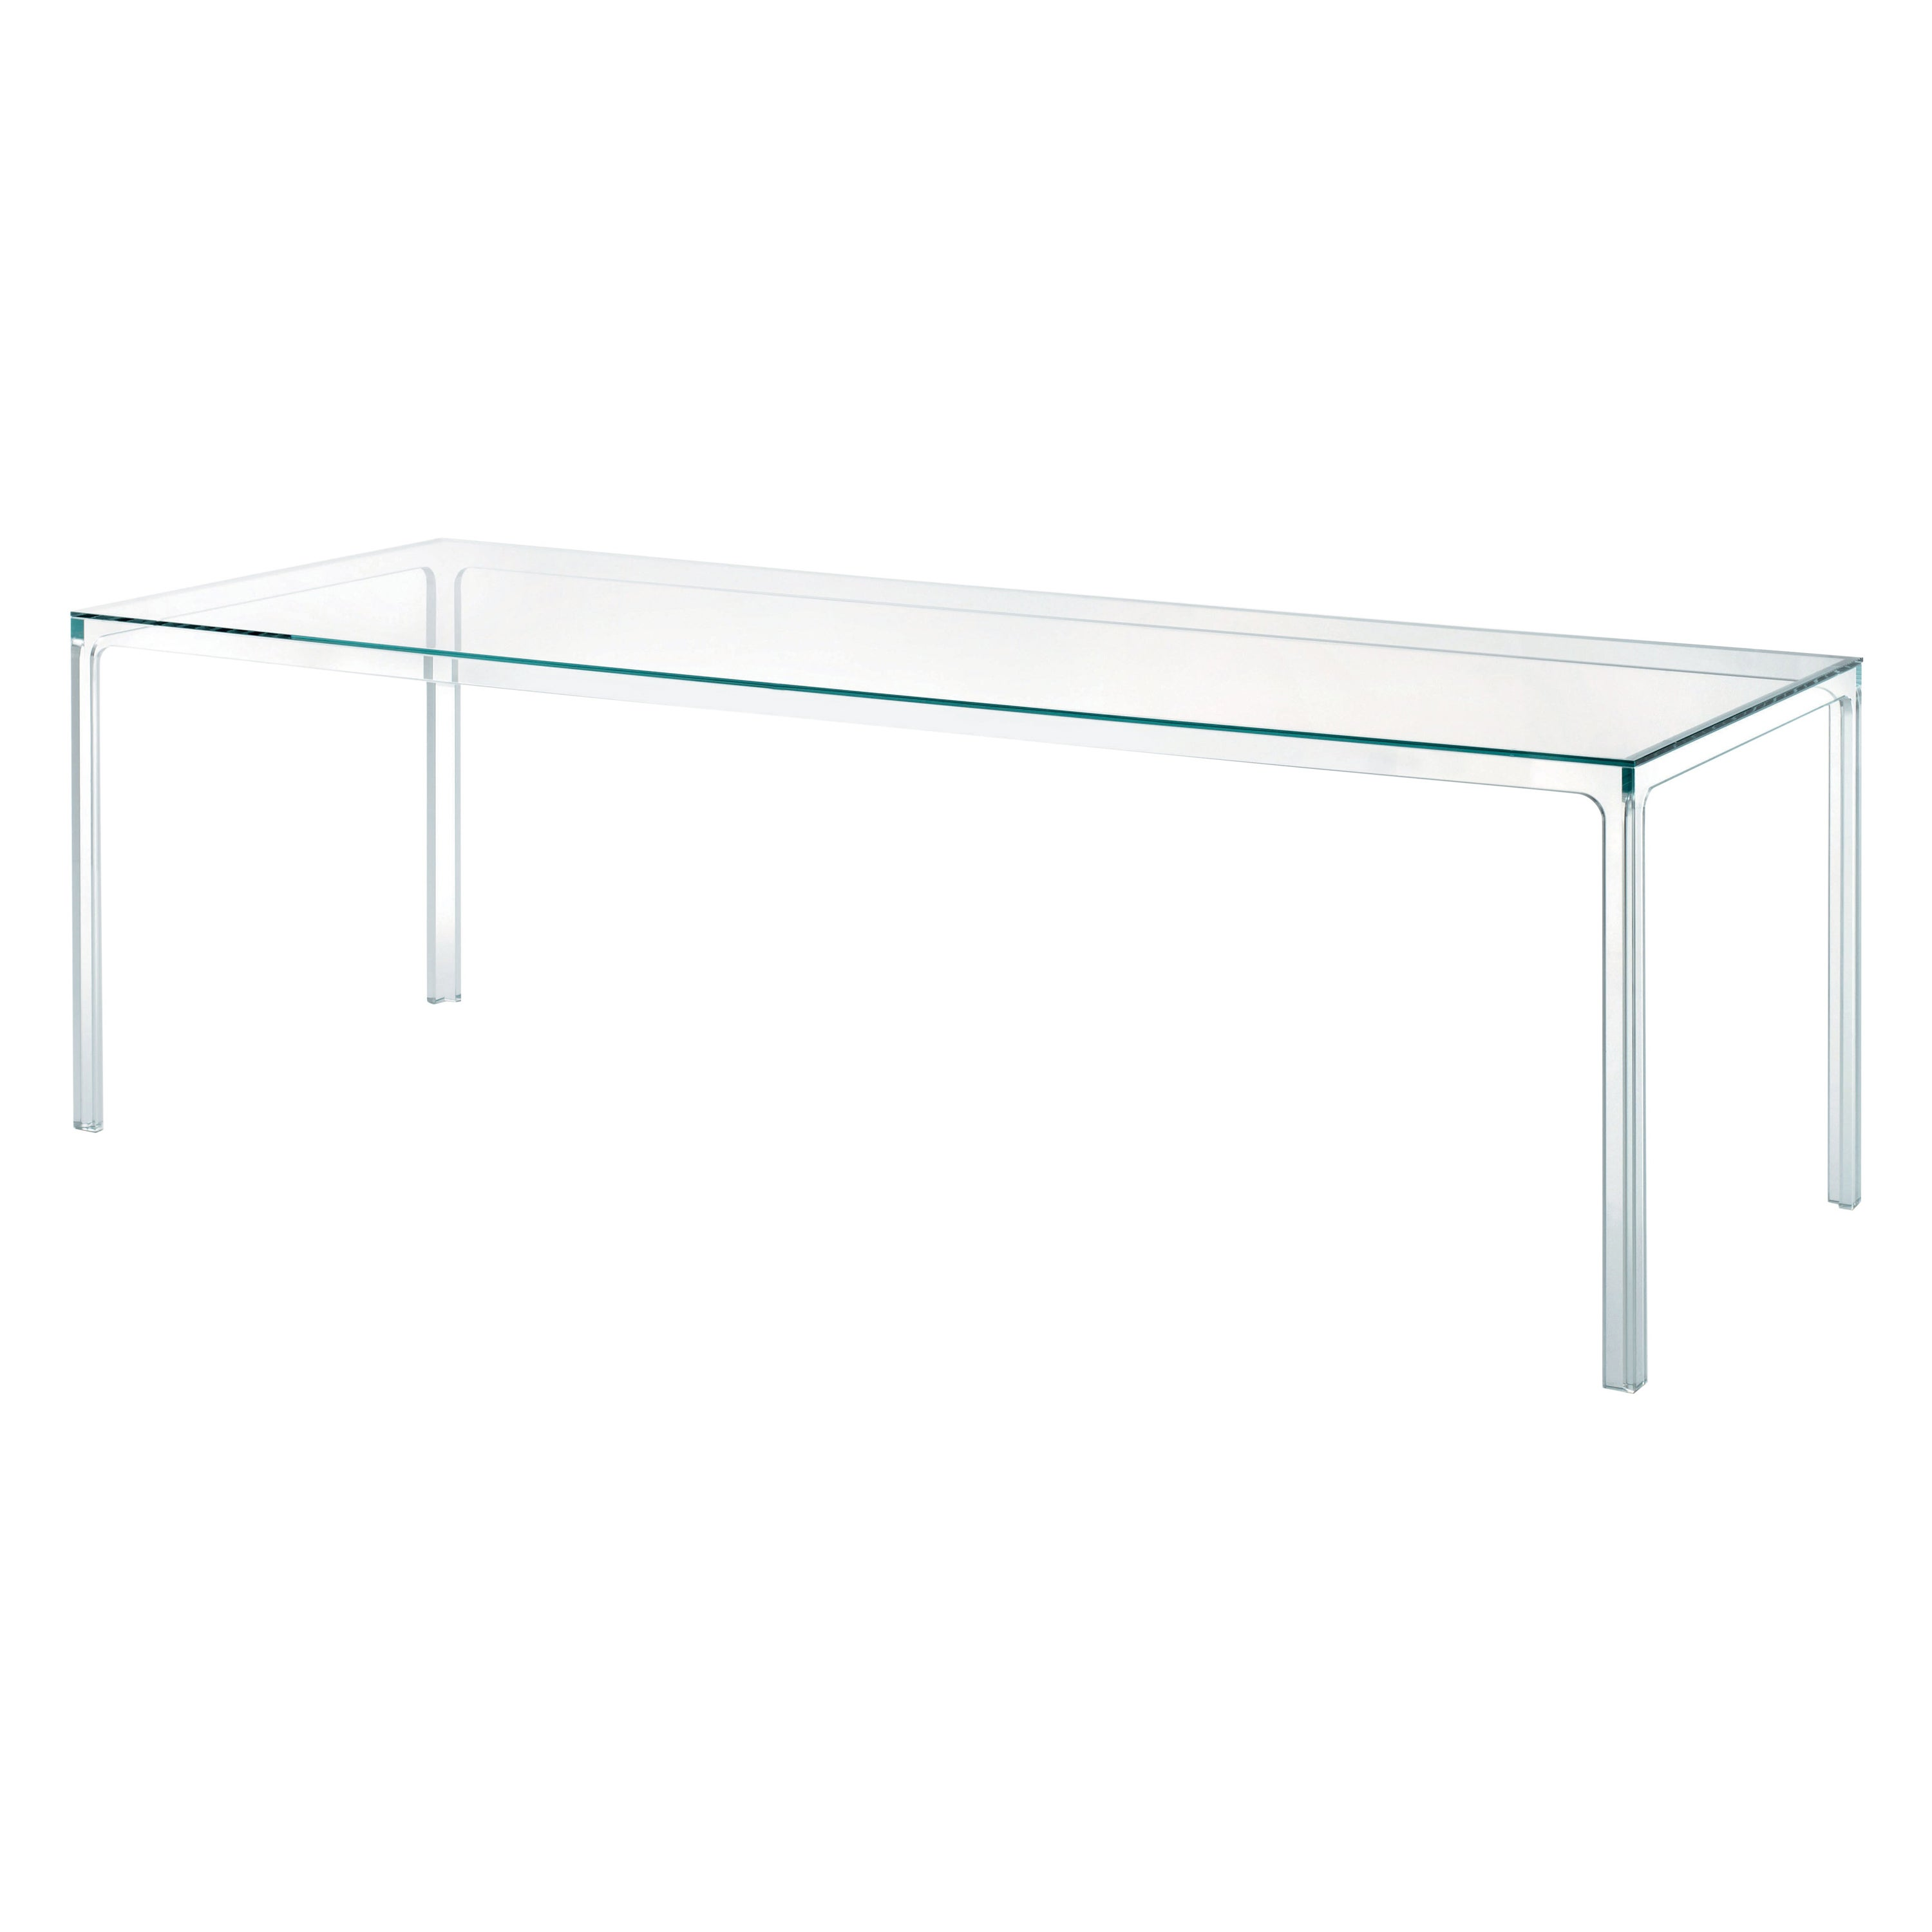 Oscar Large High Table, by Piero Lissoni for Glas Italia